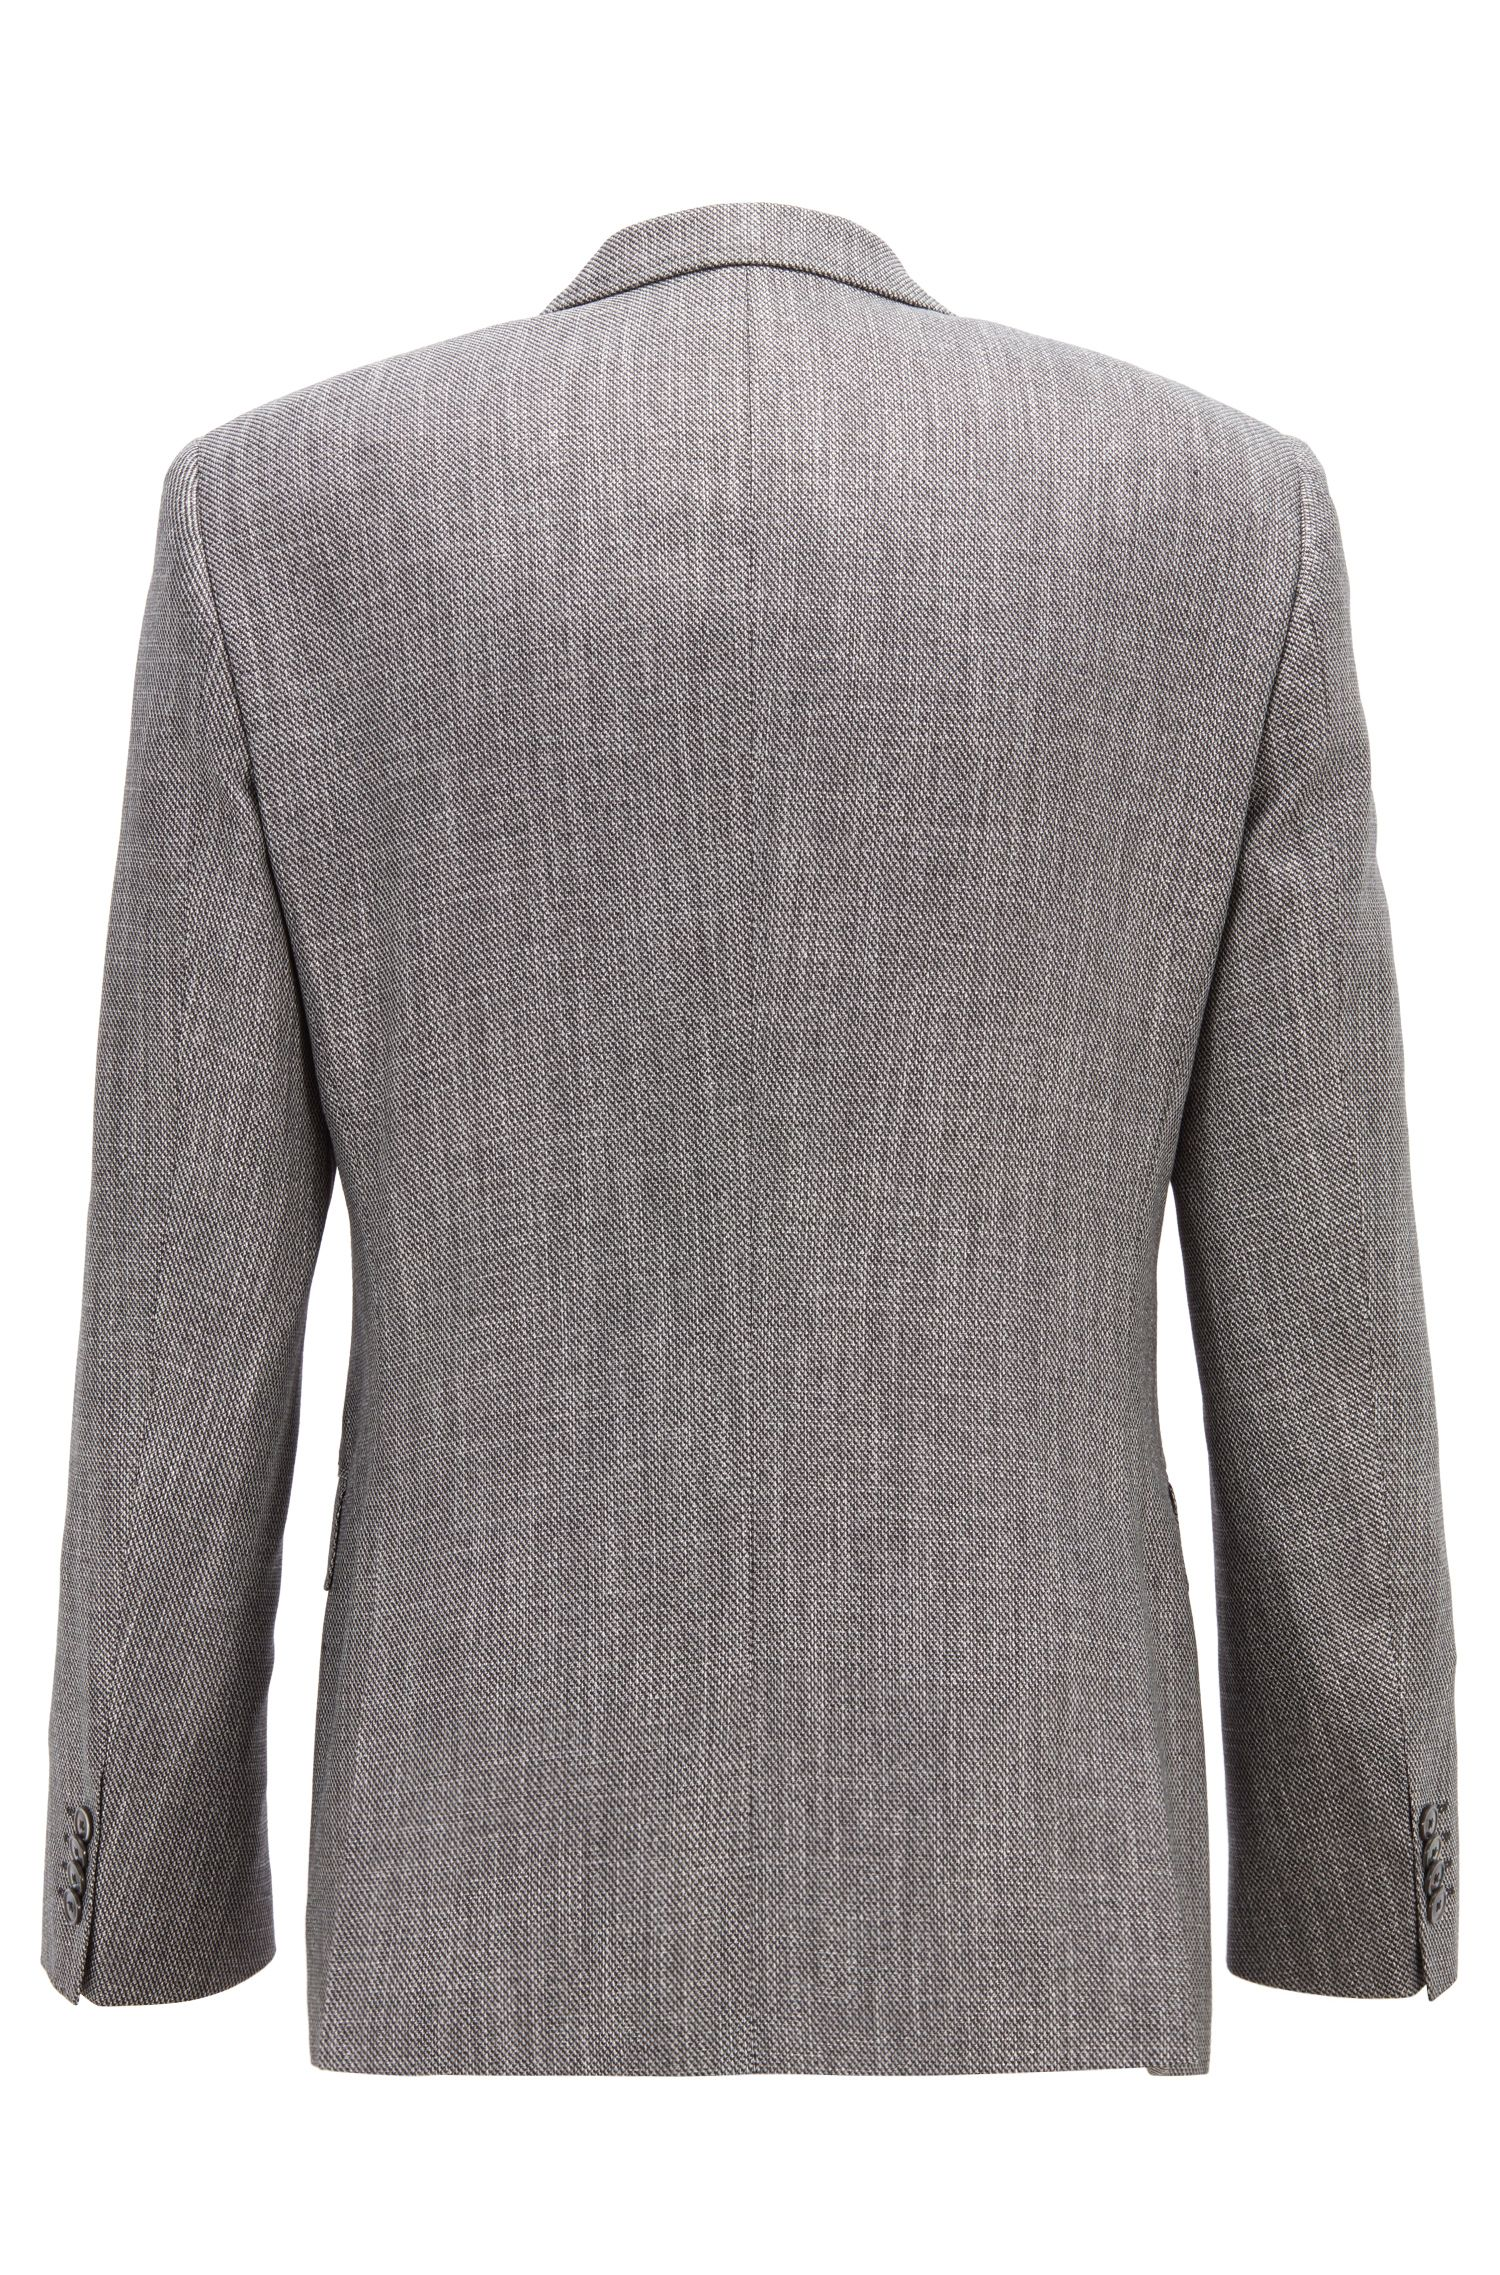 Slim-fit blazer in a patterned virgin-wool blend, Silver